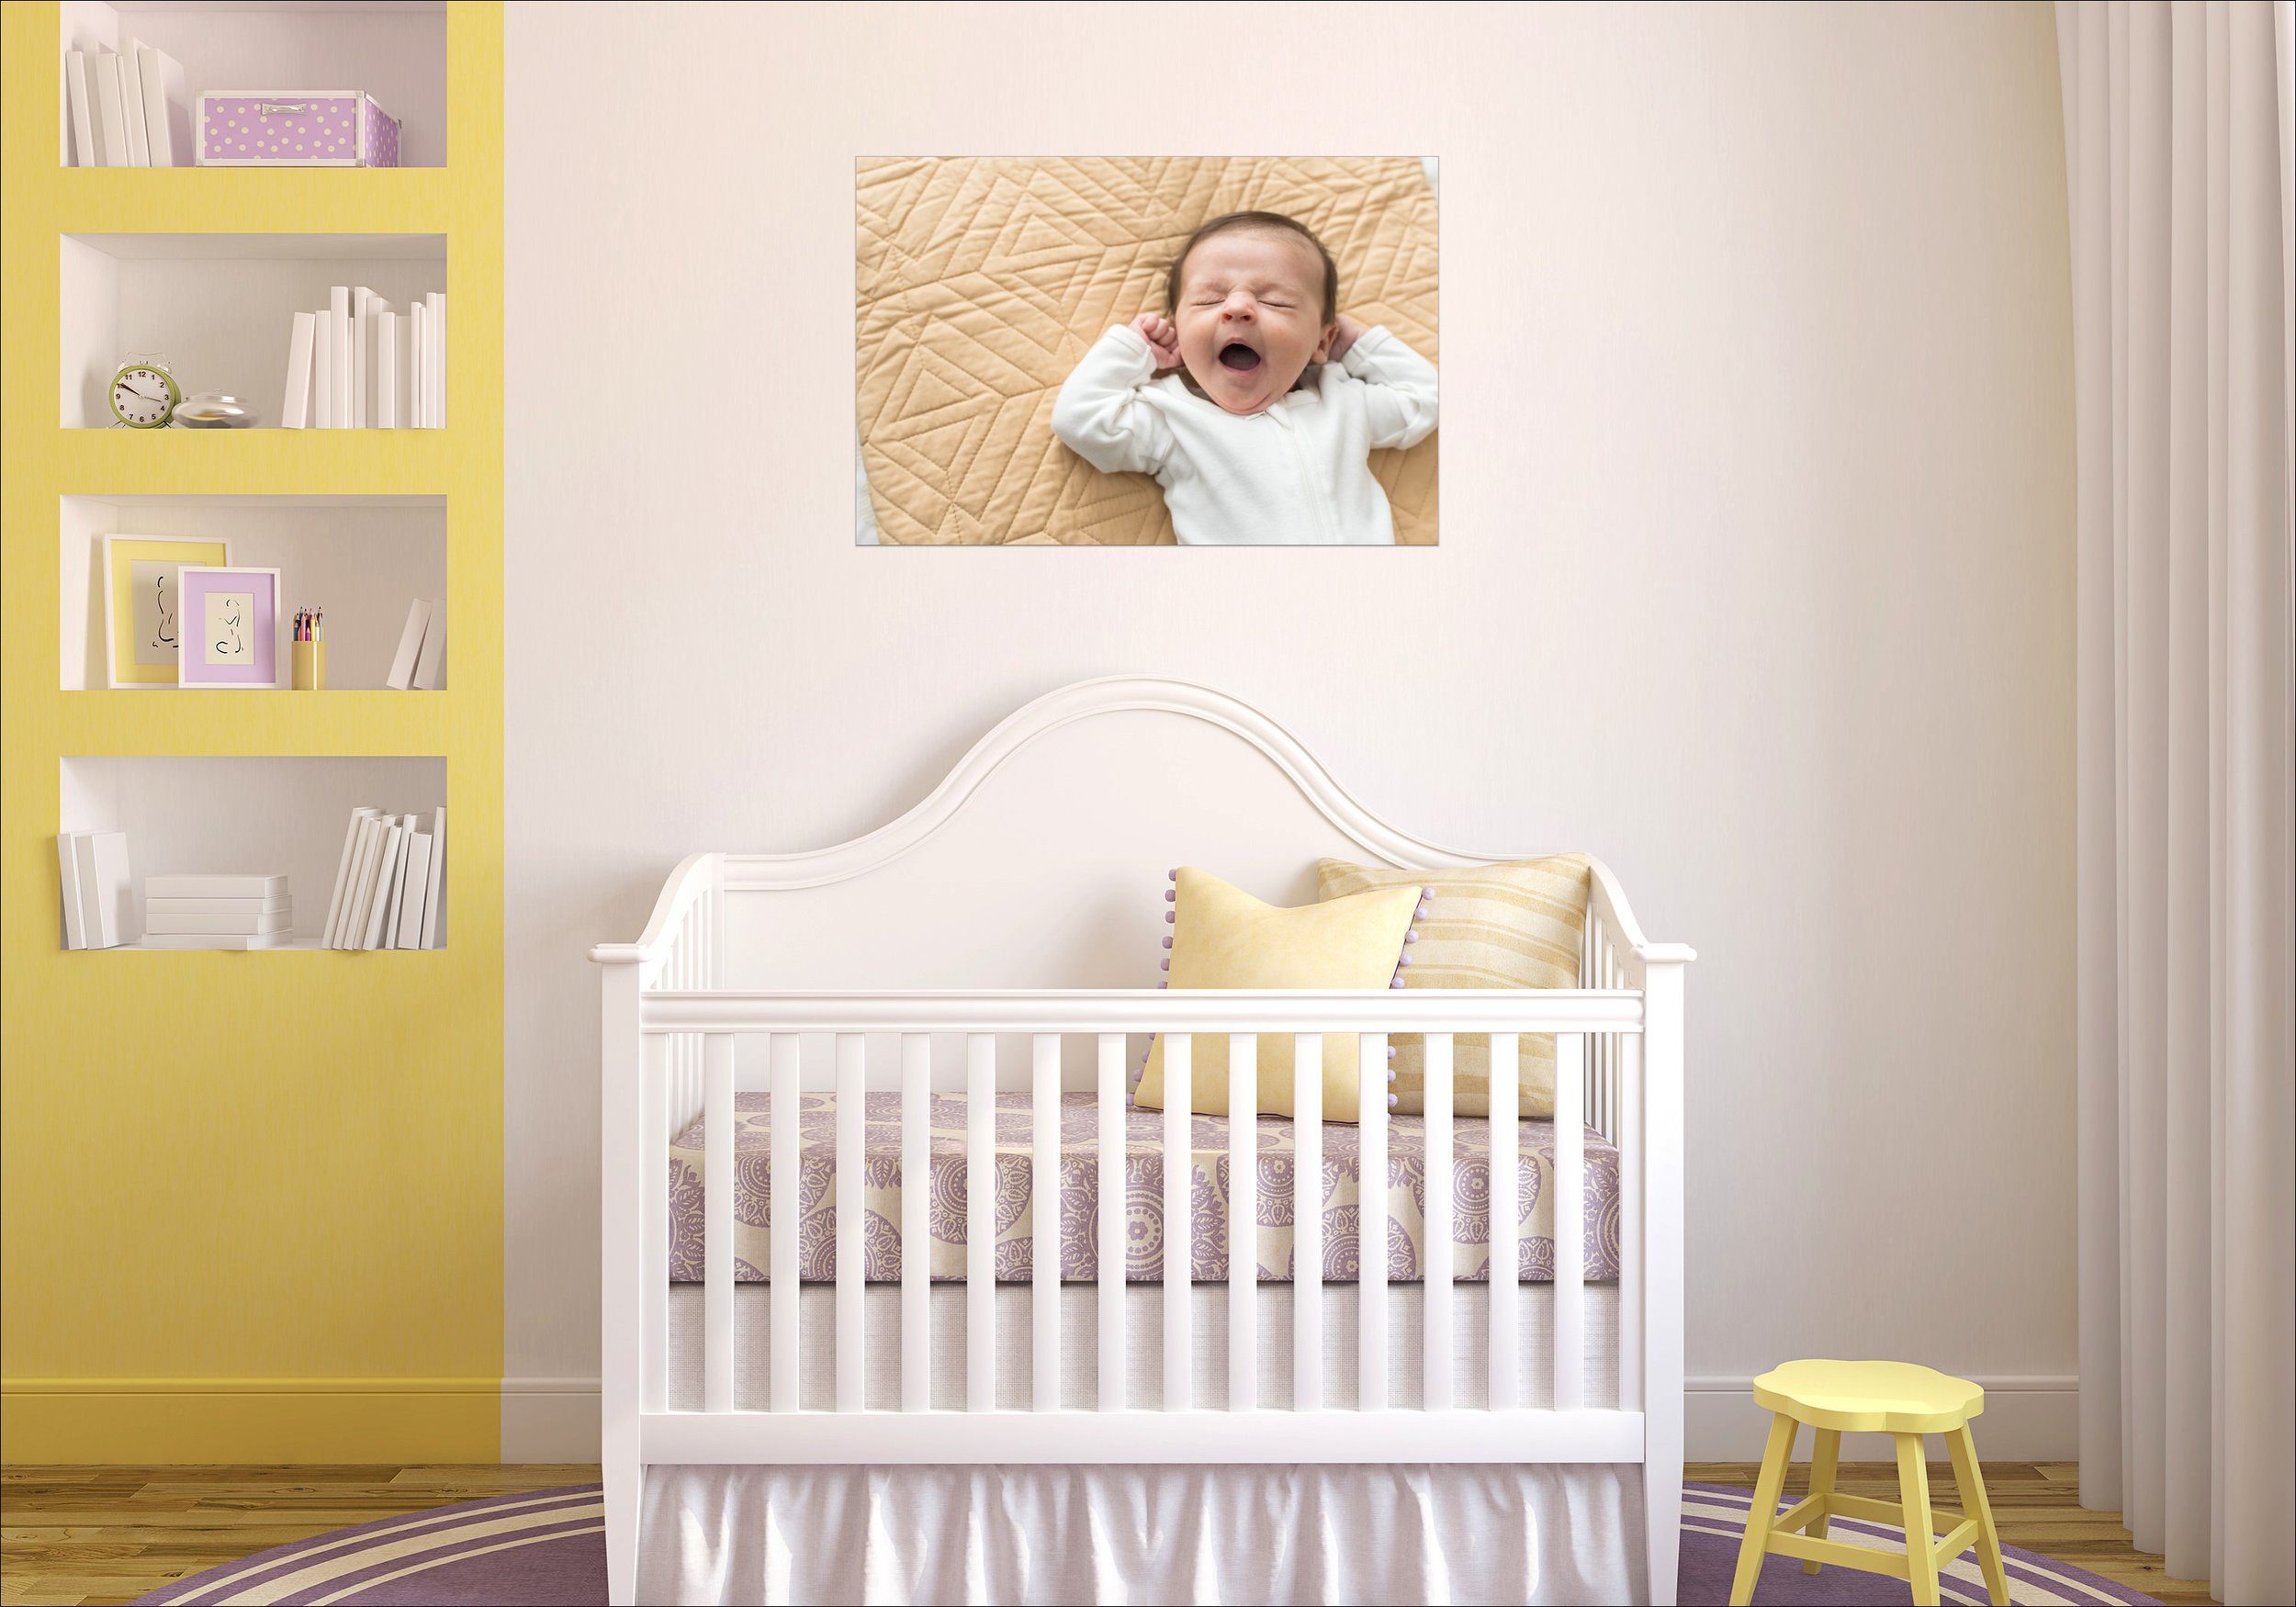 perfect Wall Art Display for over a crib